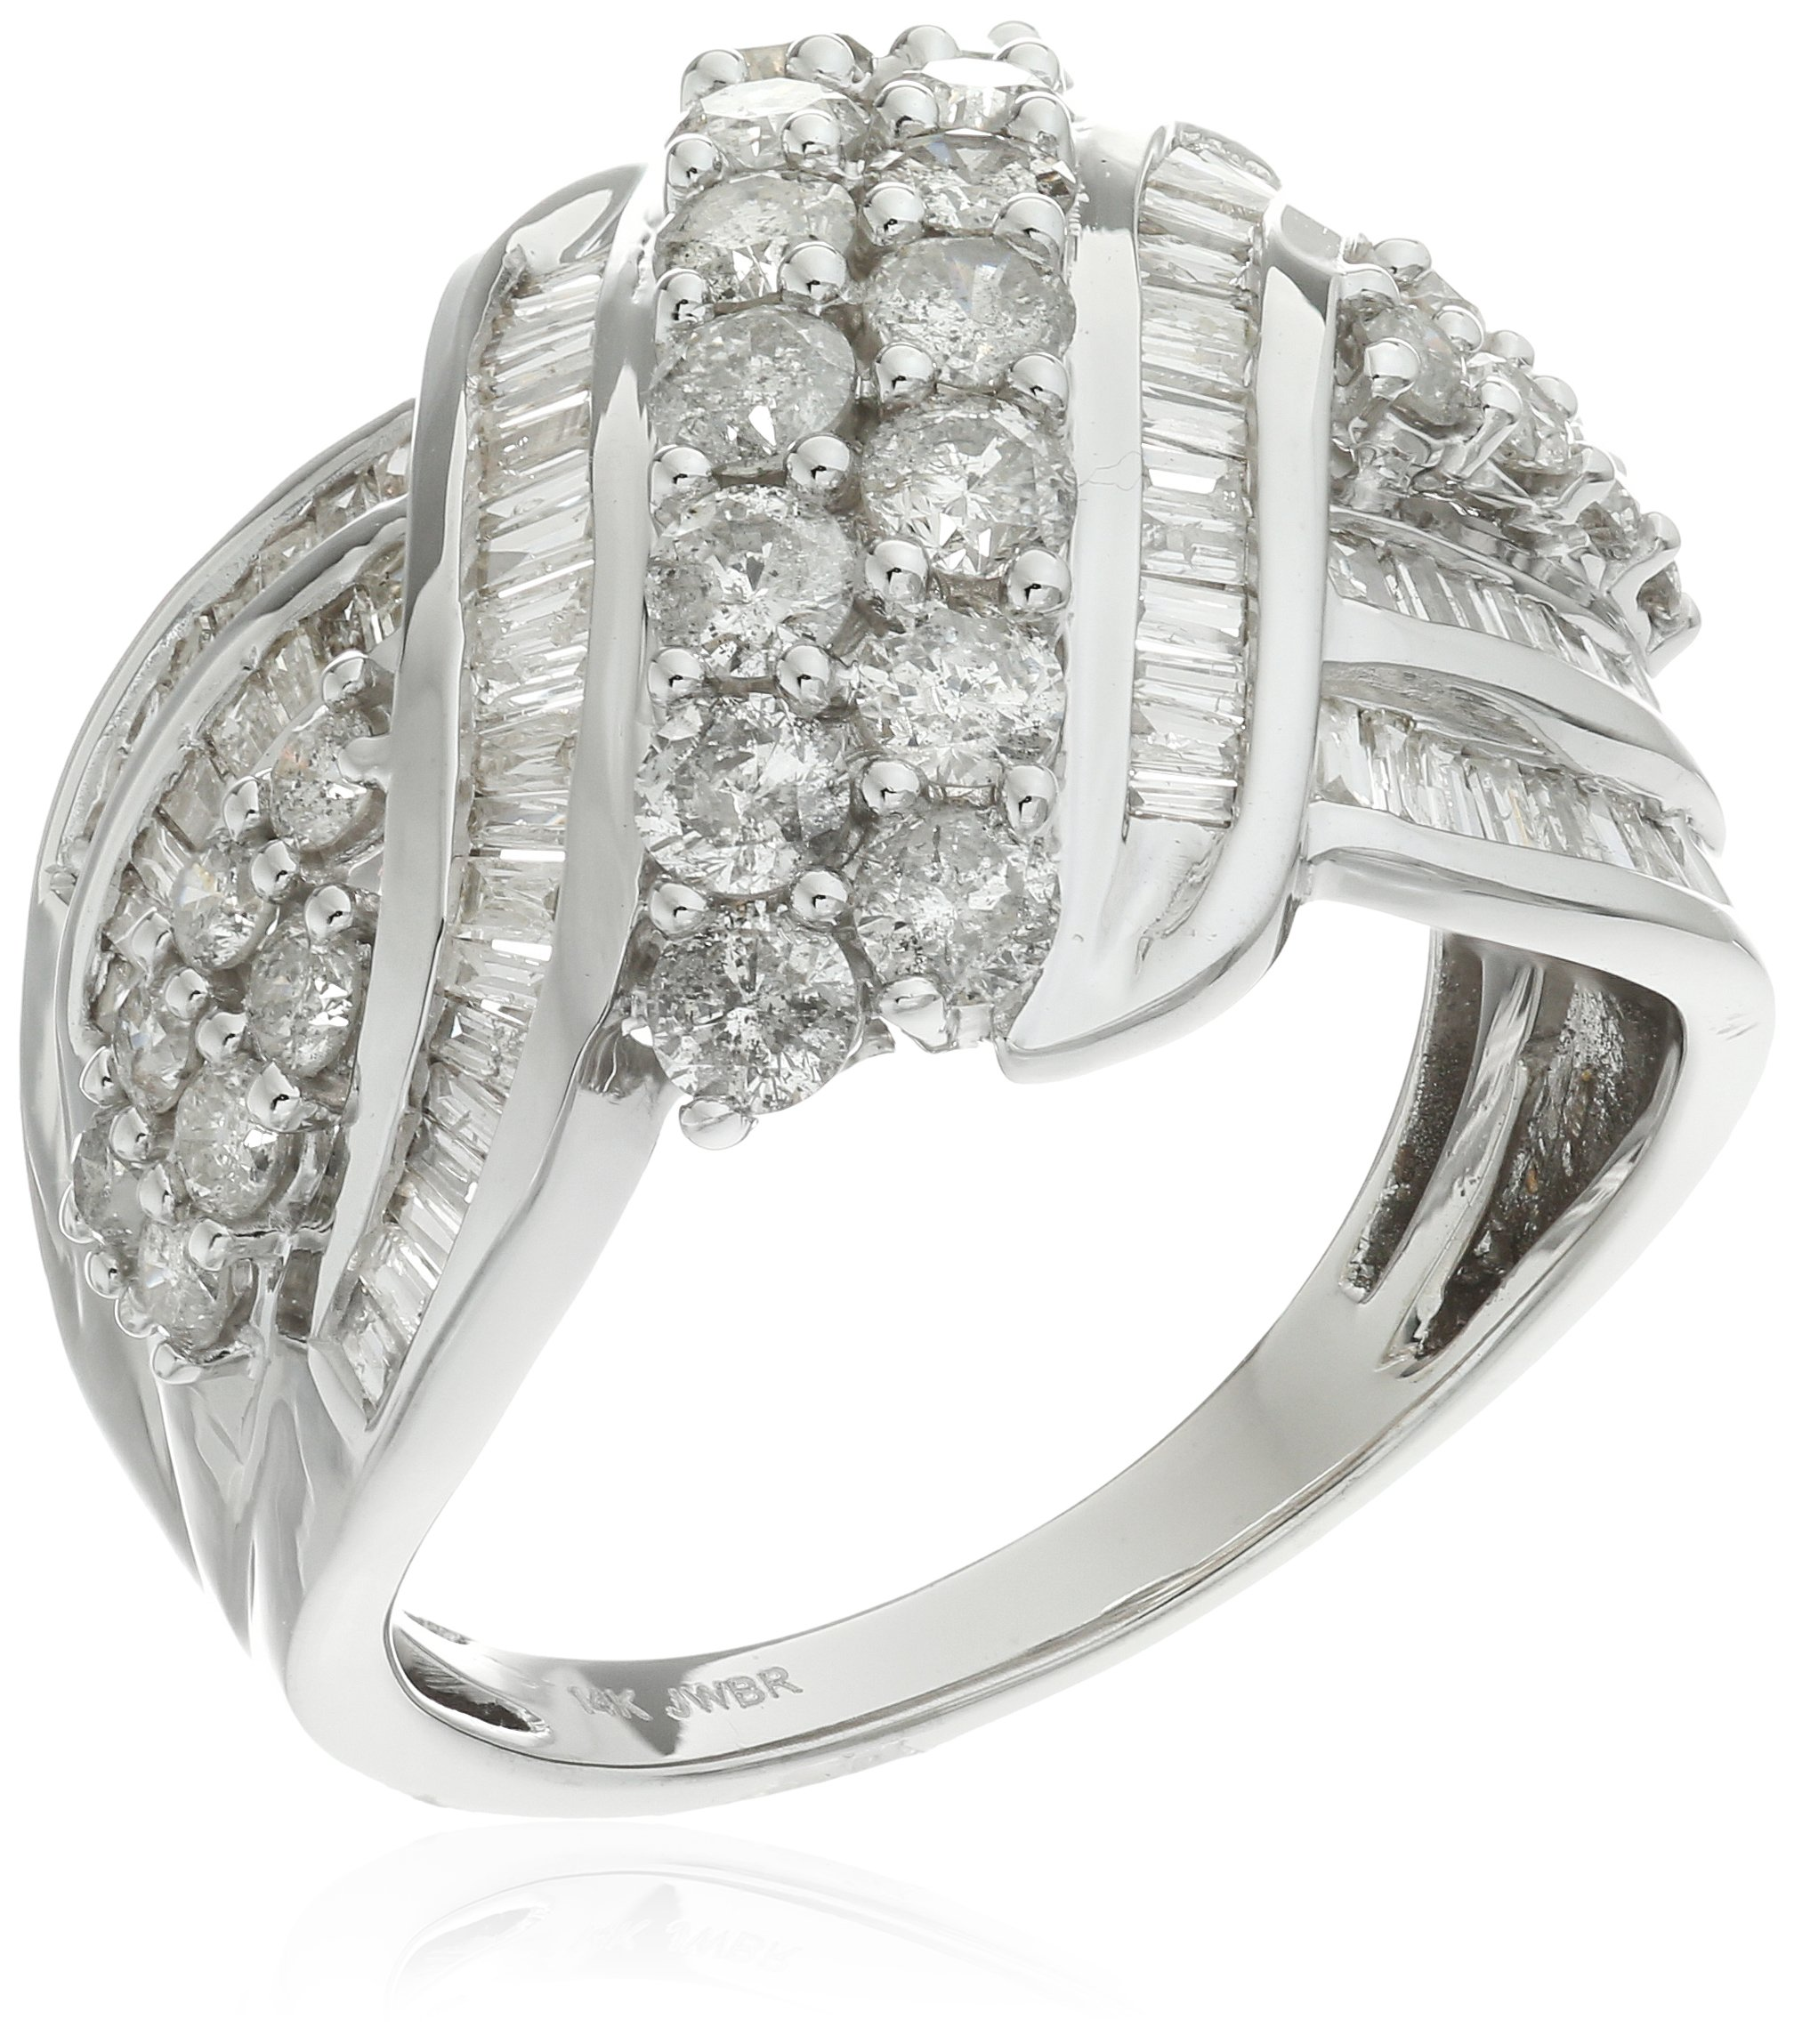 14k White Gold Double Row Diamond bypass Ring (2 cttw), Size 7